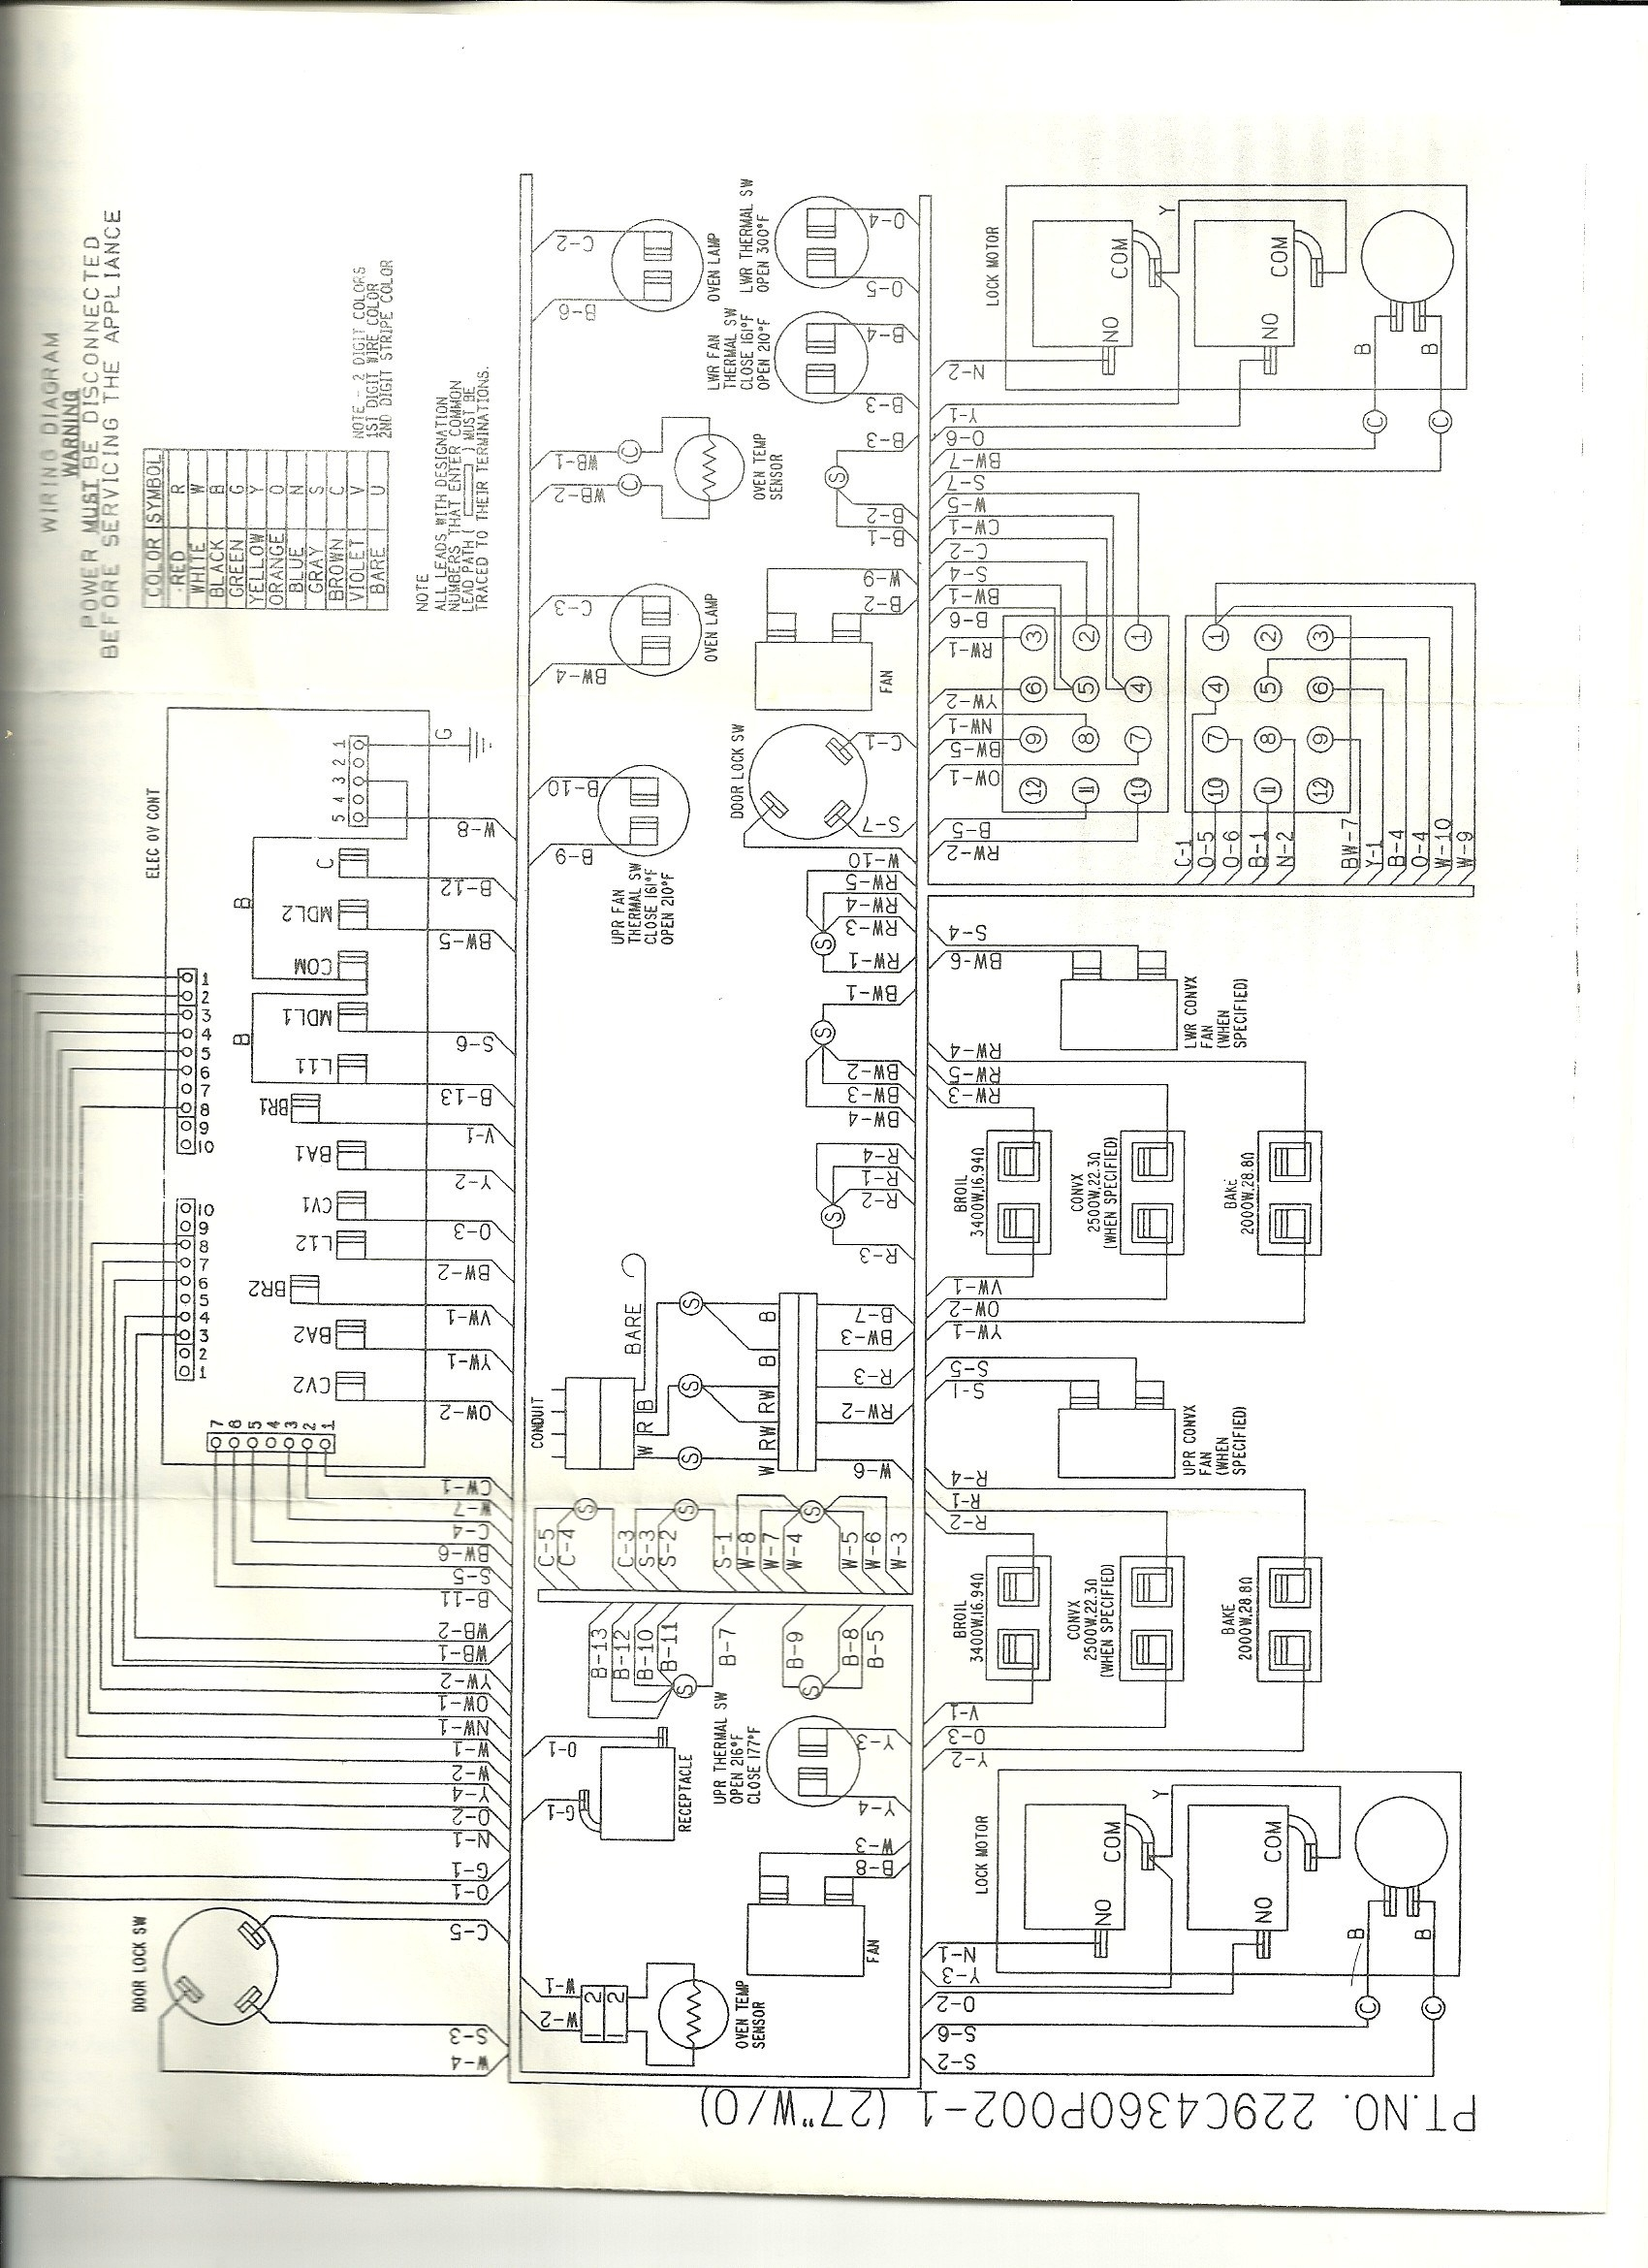 ge stove wiring diagram Download-oven range wiring diagram wiring rh westpol co Electric Stove Wiring Schematics Electric Stove 1-t